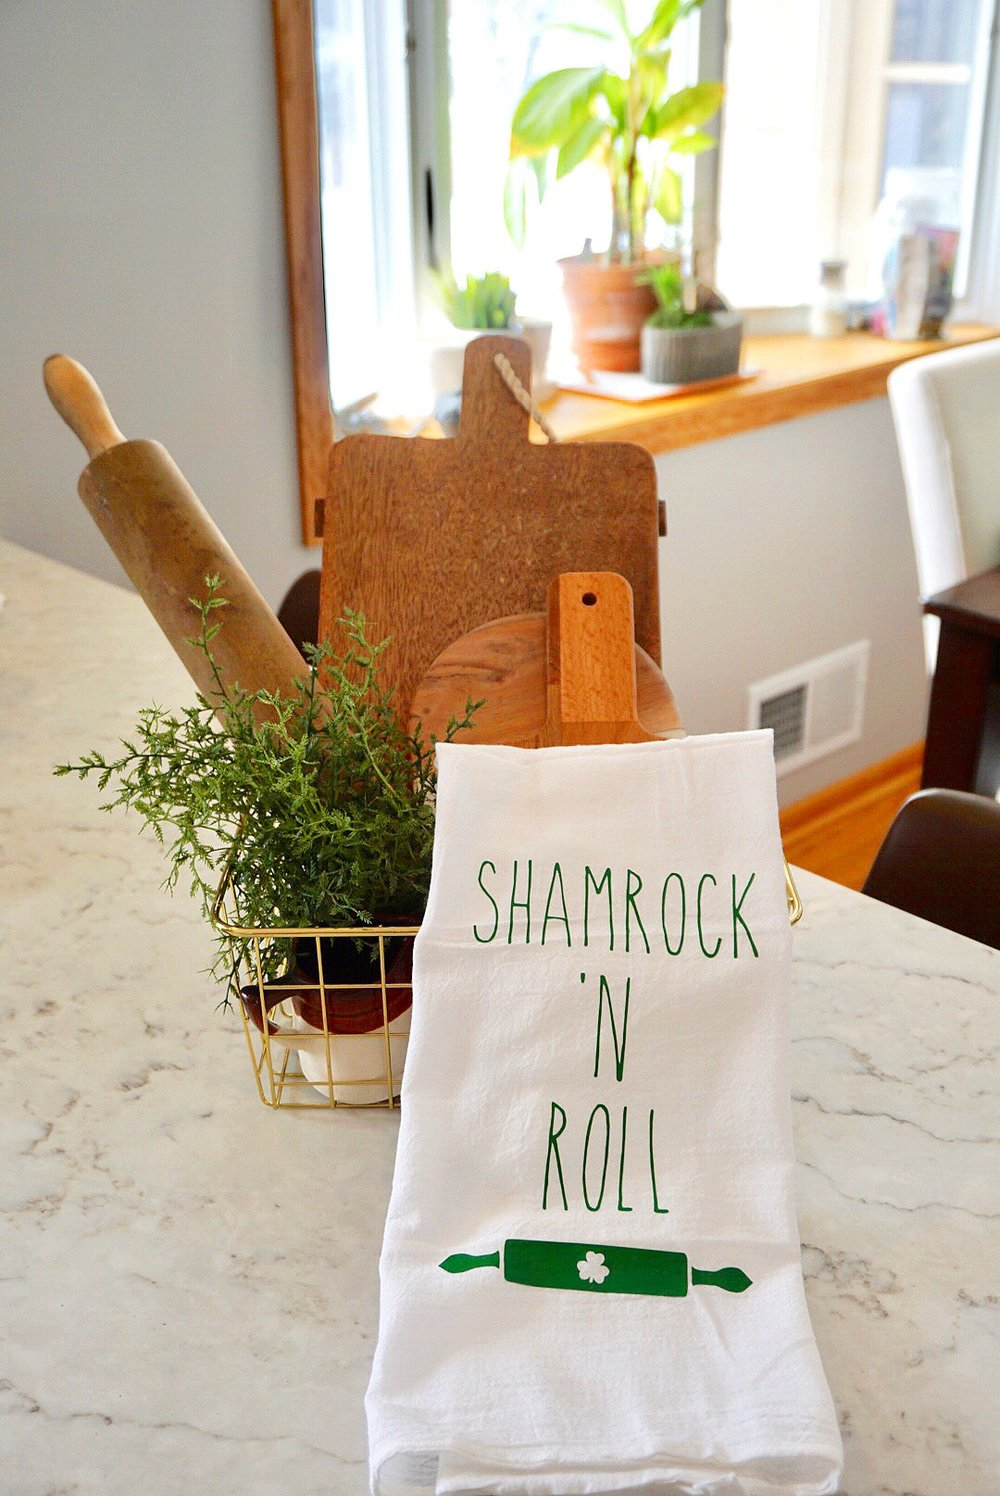 St. Patrick's Day kitchen flour sack towel made with Cricut iron on.